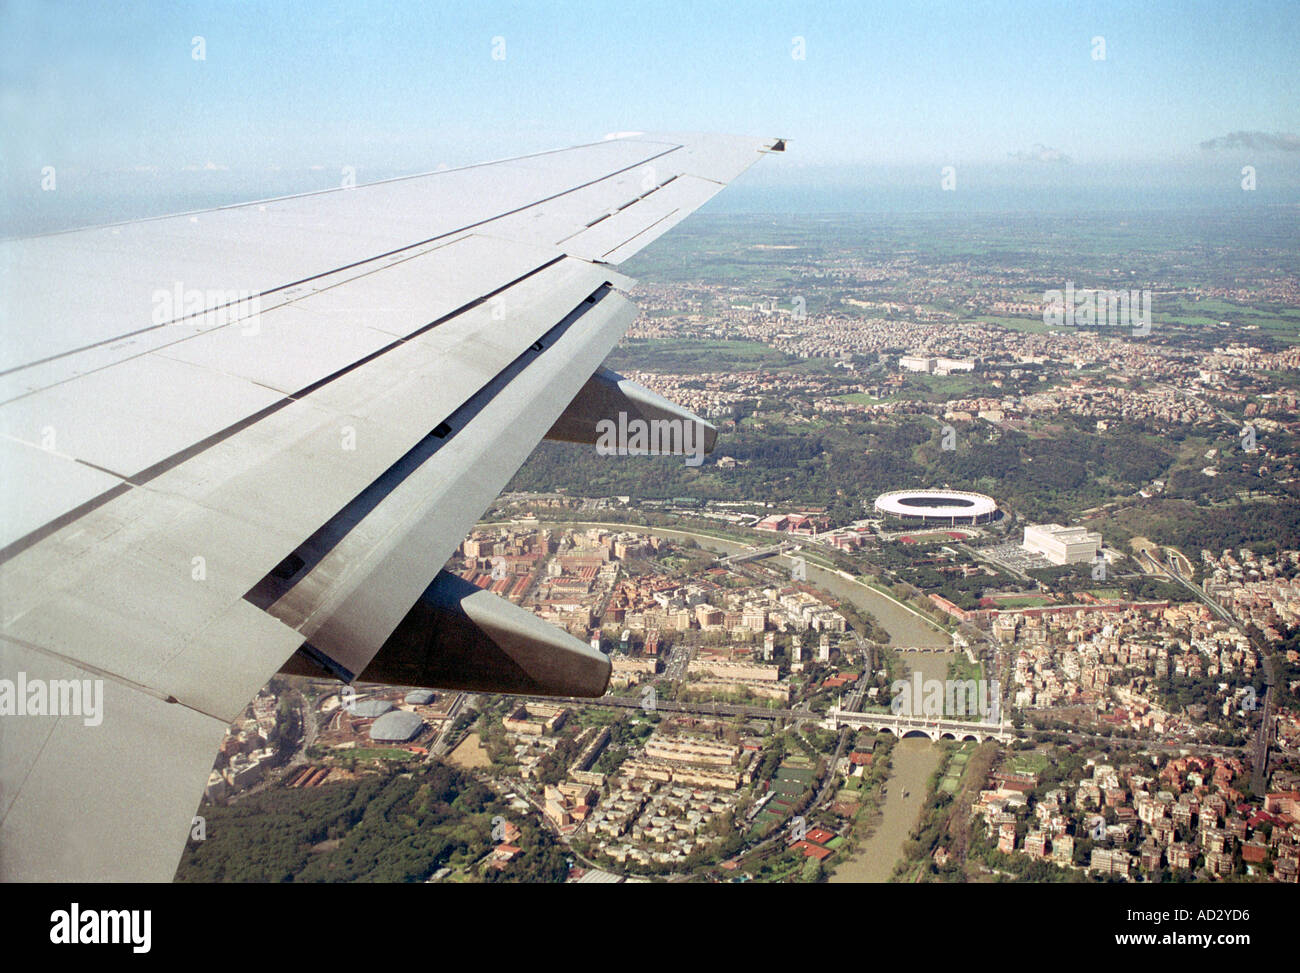 Aerial View Of Wing And Olympic Stadium Rome From Plane